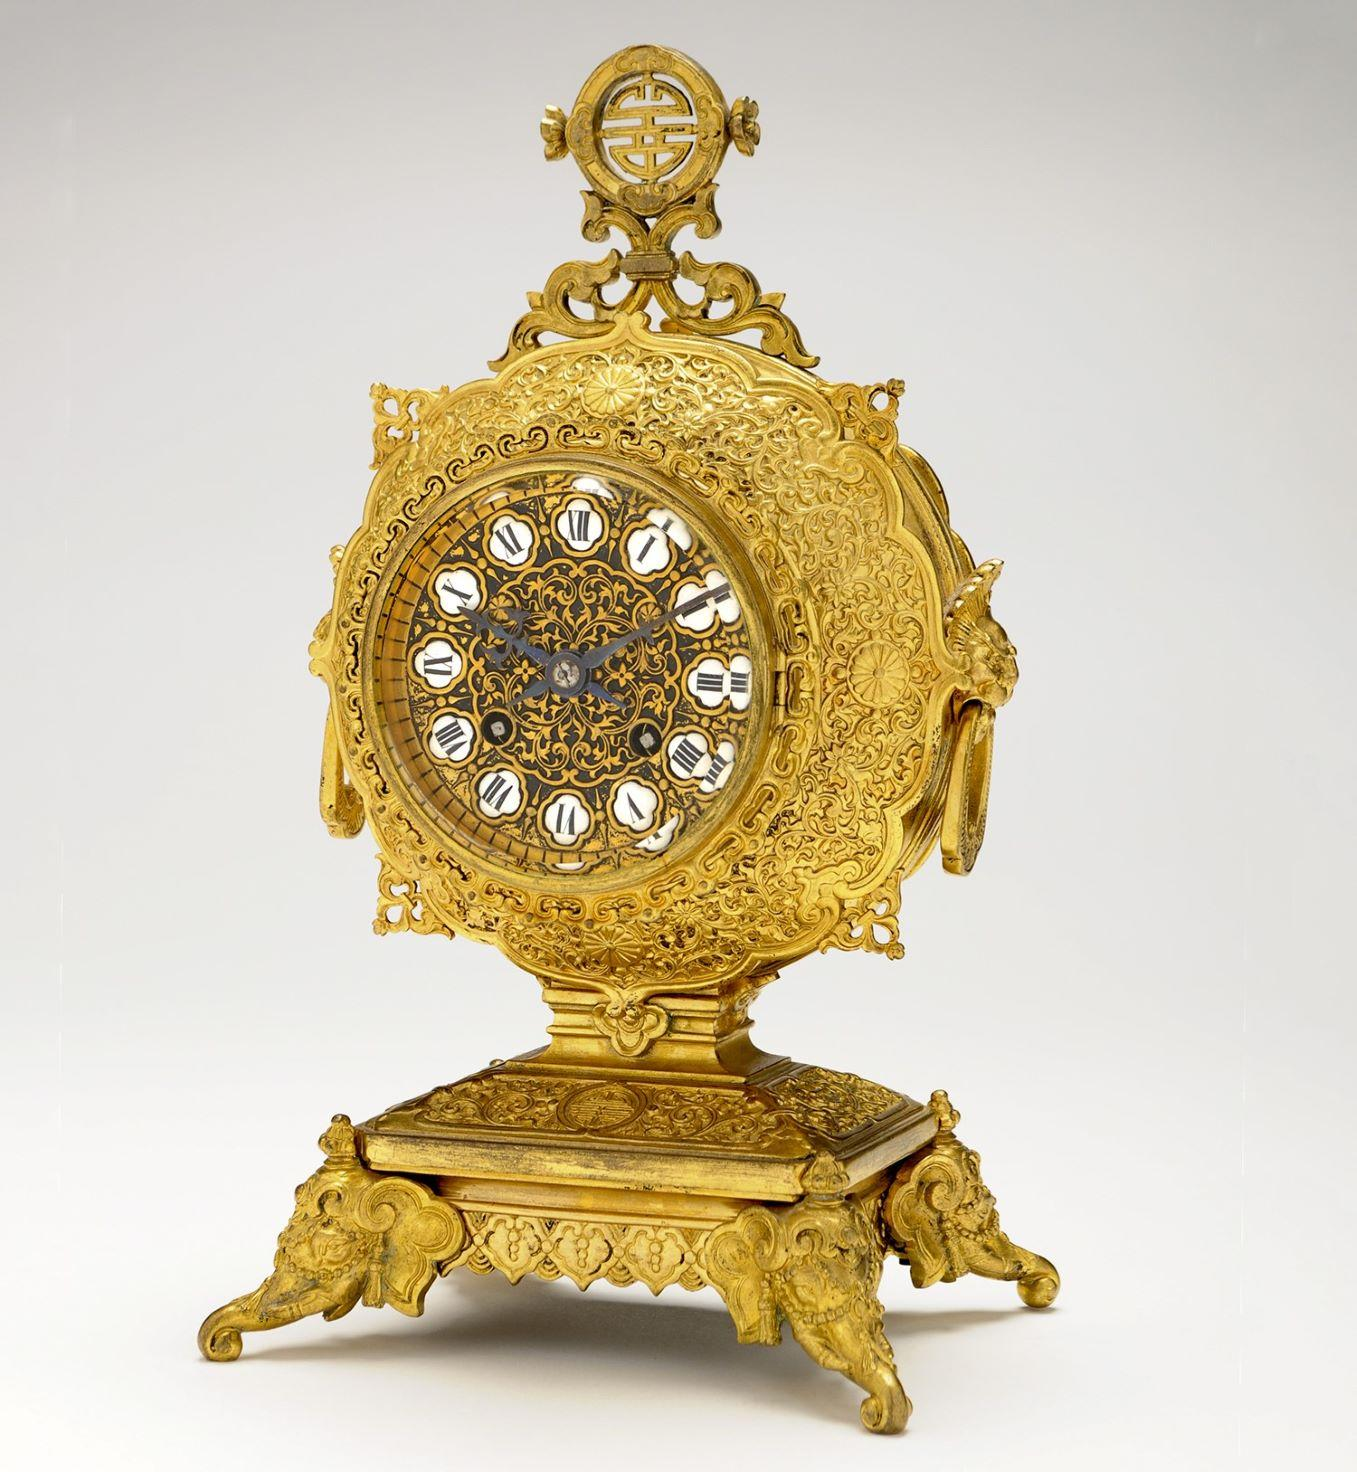 Gold Clock Lot at Auction